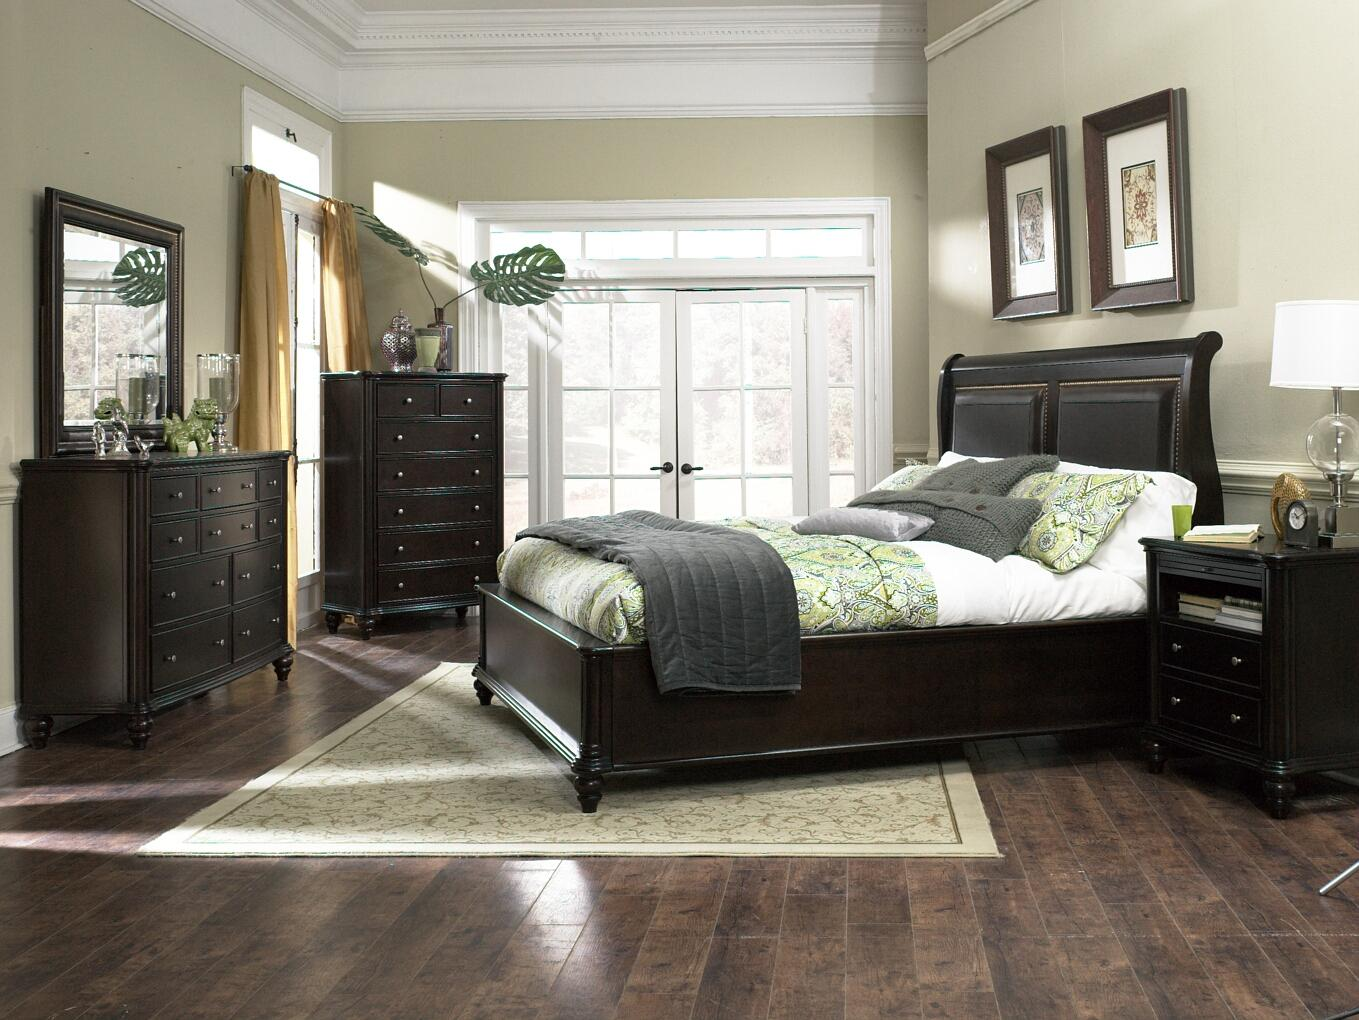 Furniture Brands Inc B7067 Queen Transitional Sleigh Bed With Leather Naihead Trim Bigfurniturewebsite Sleigh Bed